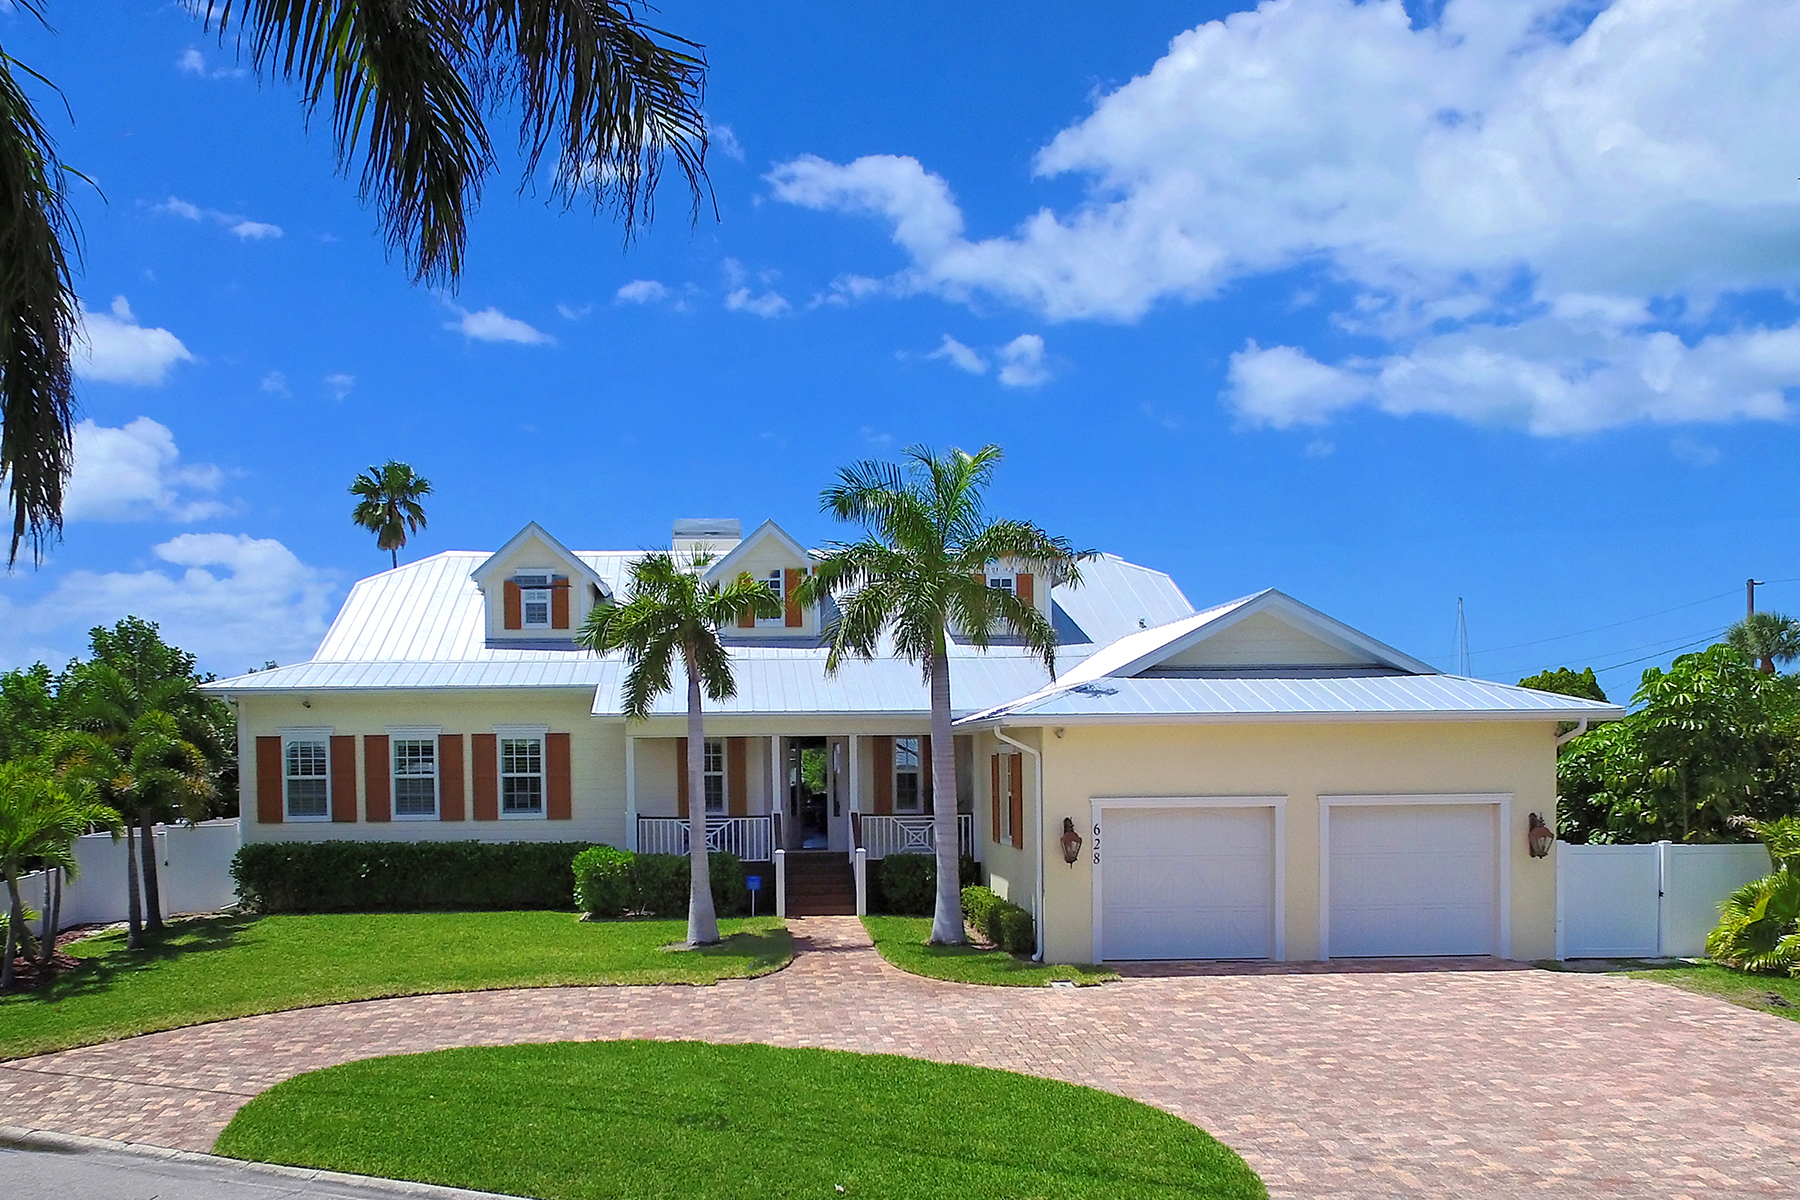 Single Family Home for Sale at HOLMES BEACH 628 Key Royale Dr, Holmes Beach, Florida 34217 United States